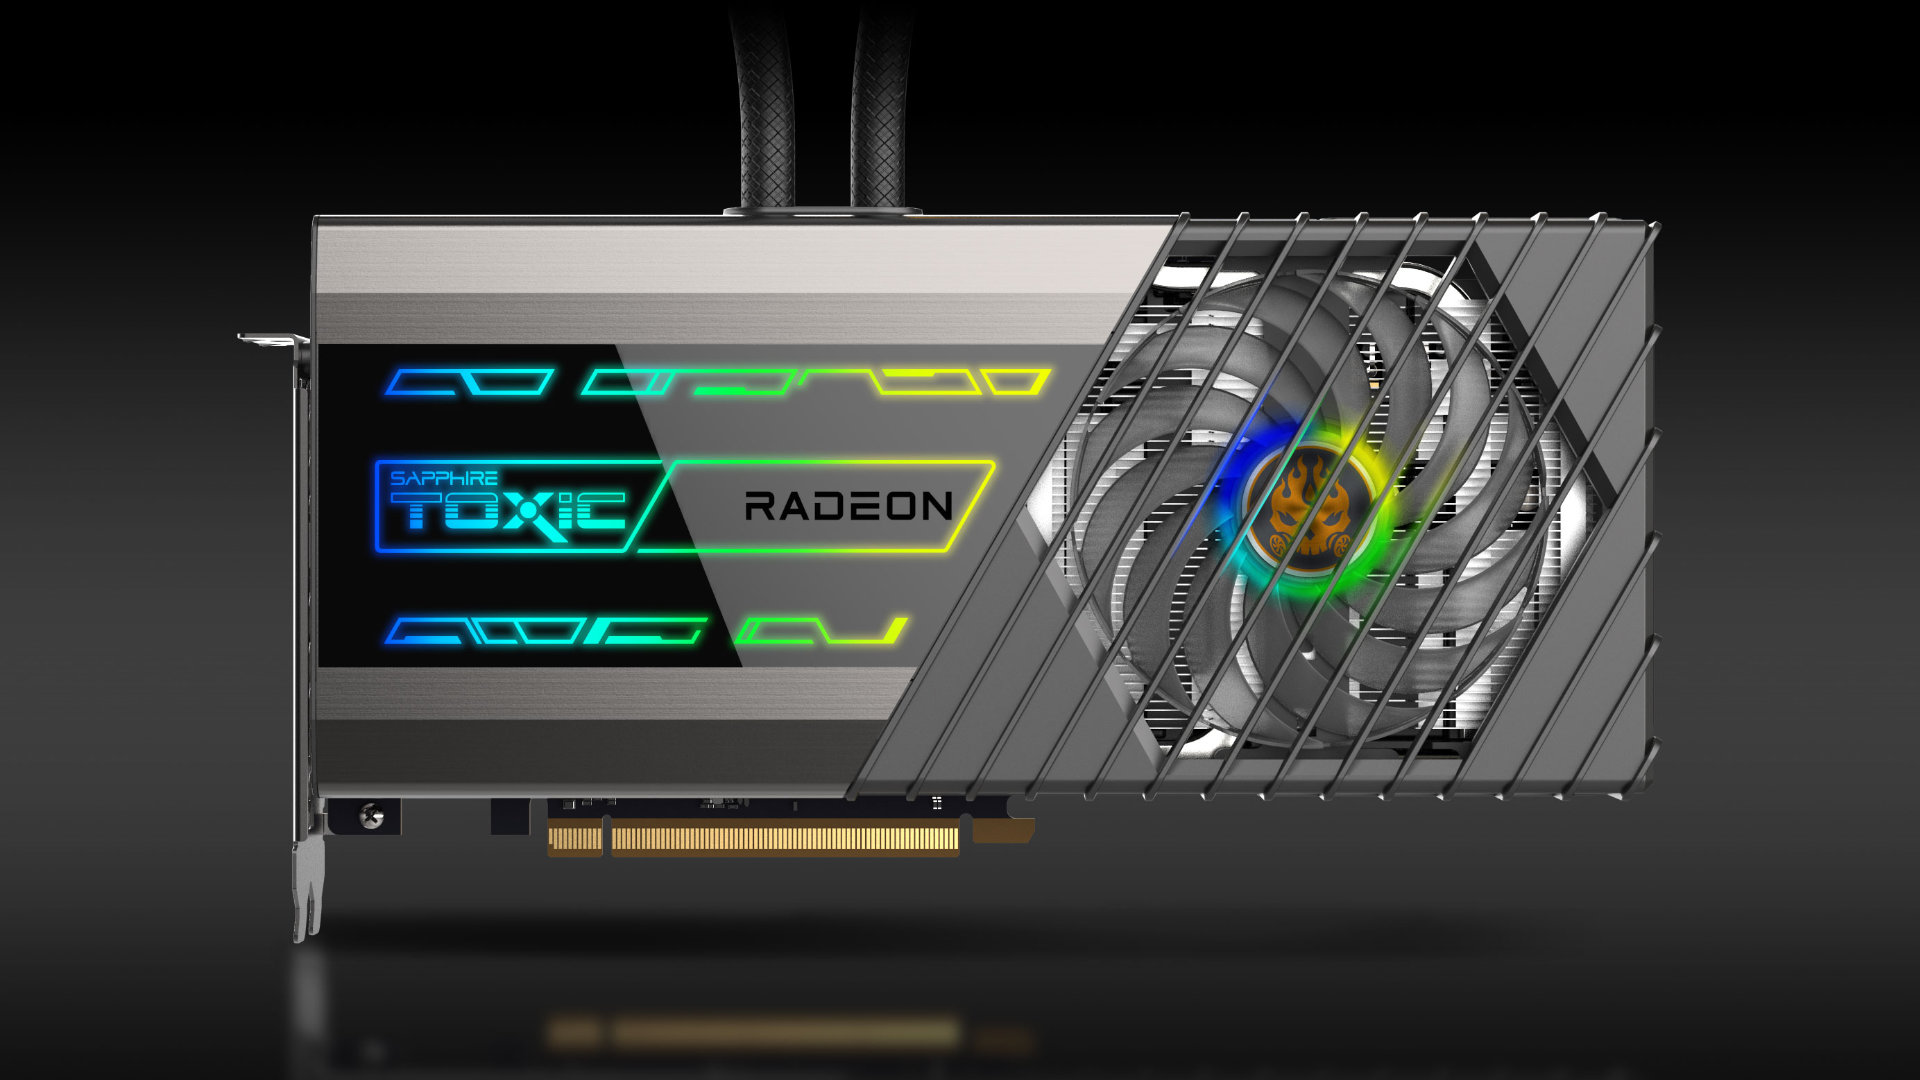 Sapphire releases the first AIO water cooled AMD Big Navi card